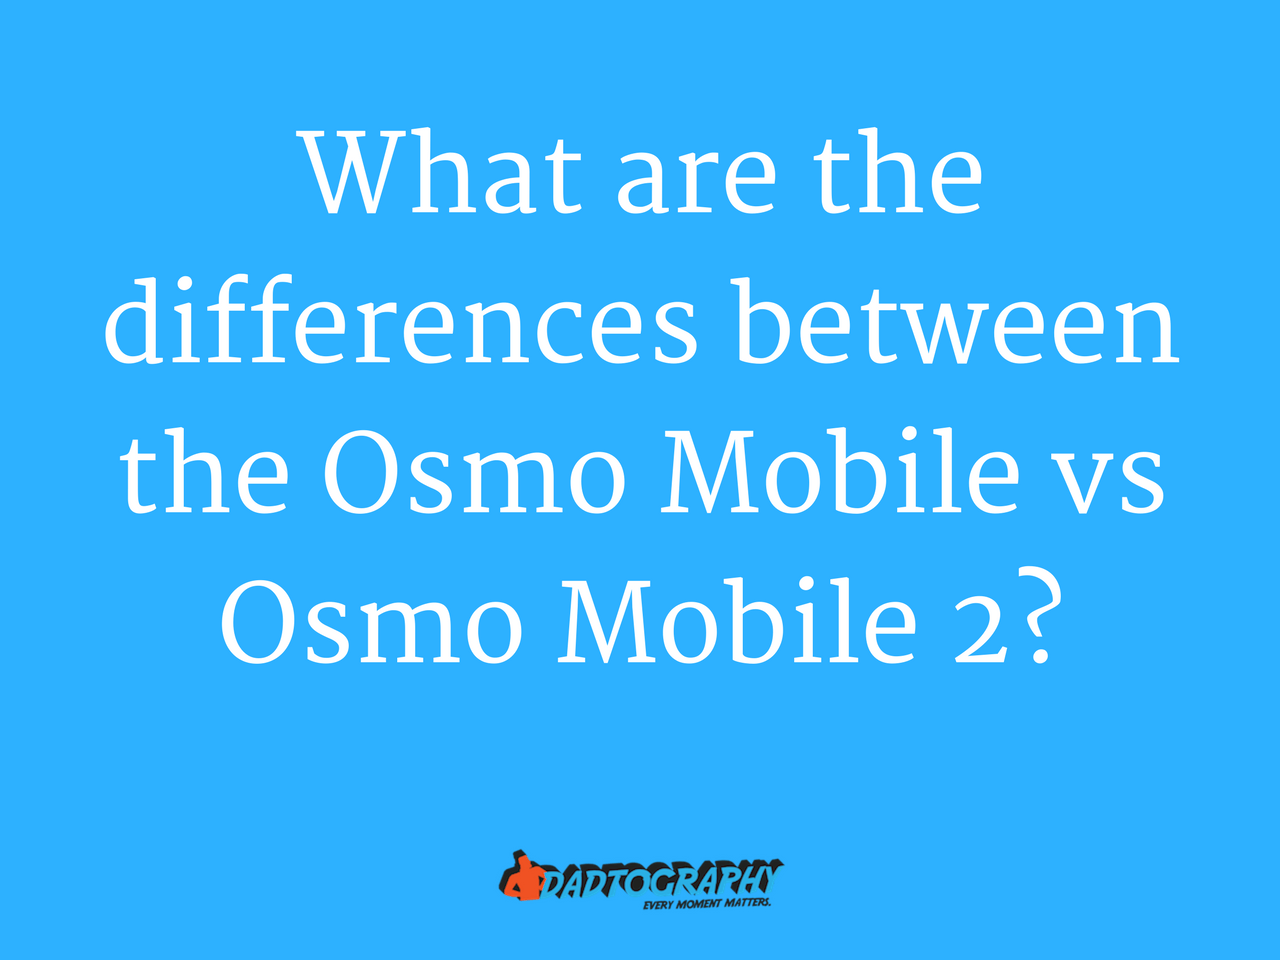 Osmo Mobile vs Osmo Mobile 2